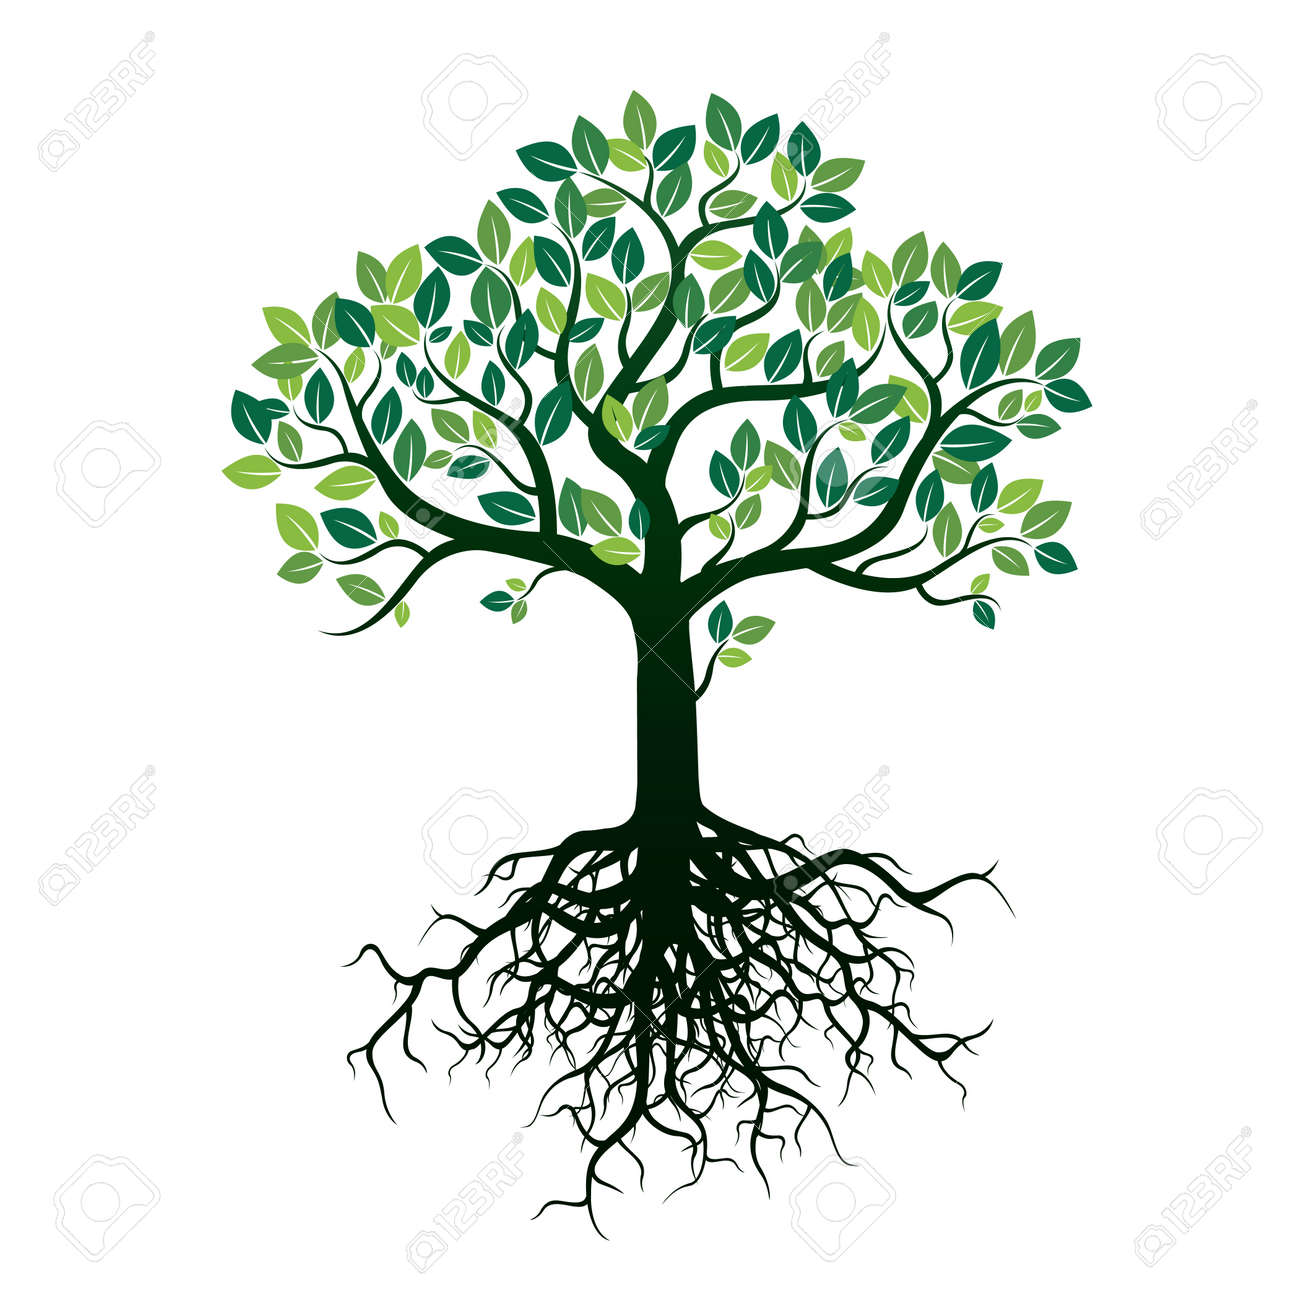 color shape of tree and roots vector illustration royalty free rh 123rf com tree roots vector free tree roots vector logo